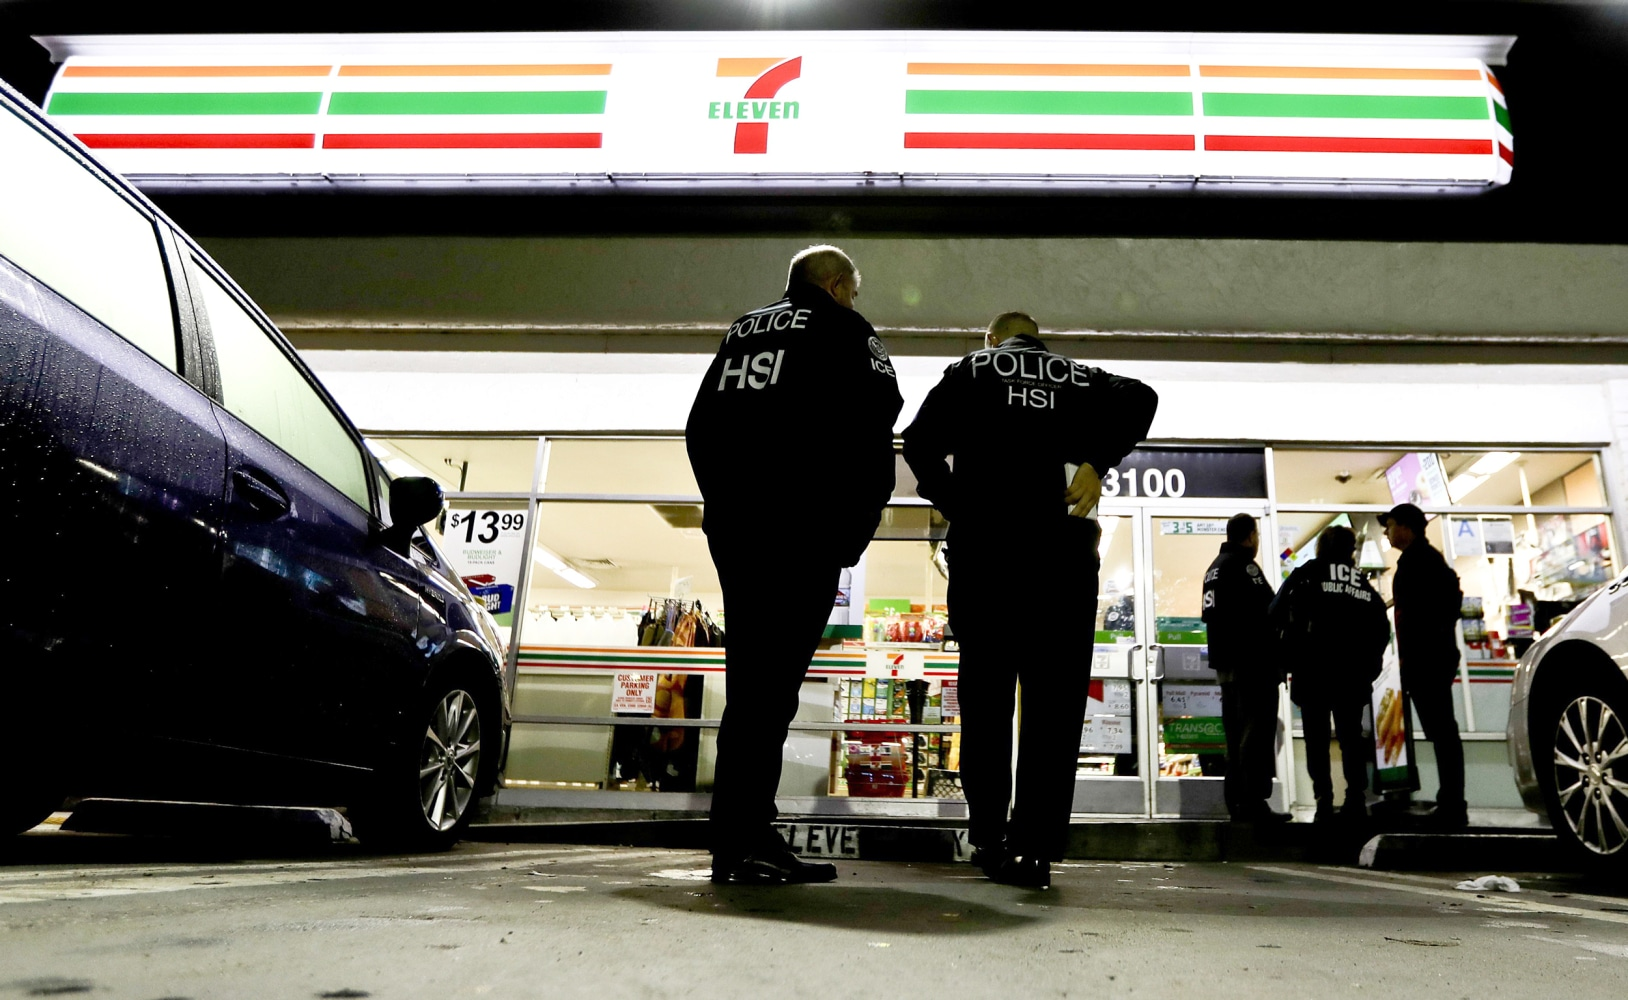 U.S. immigration operation targets 7-Eleven stores in 17 states